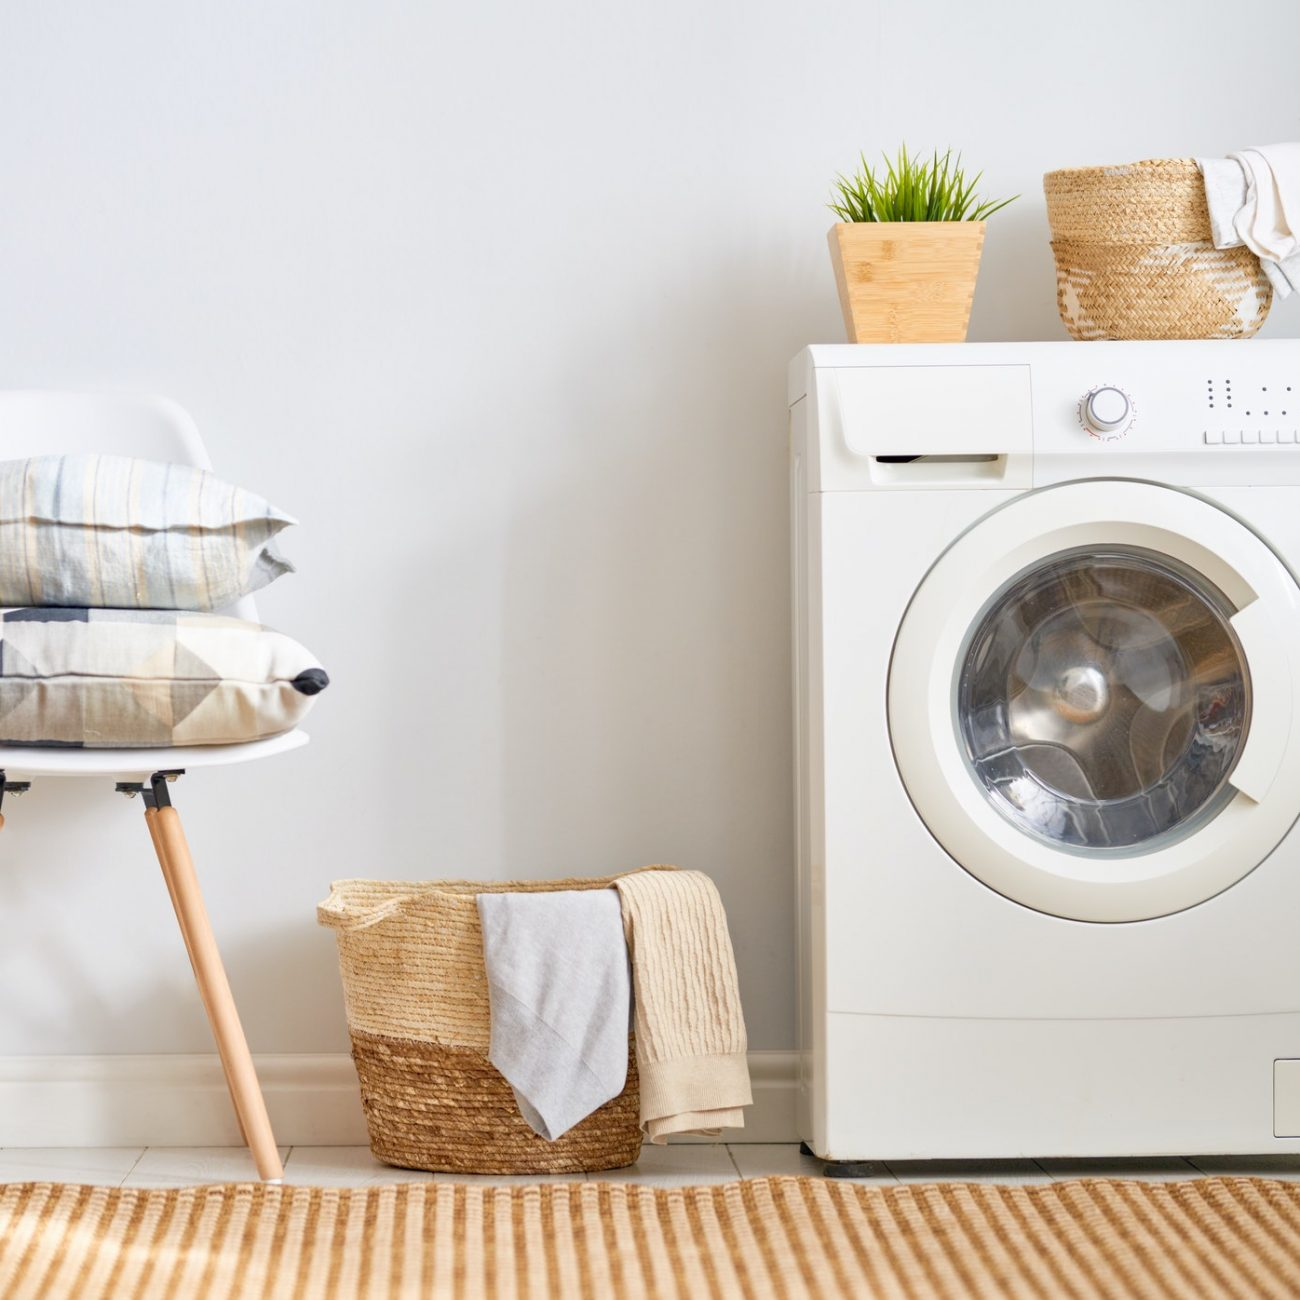 laundry-room-with-a-washing-machine.jpg